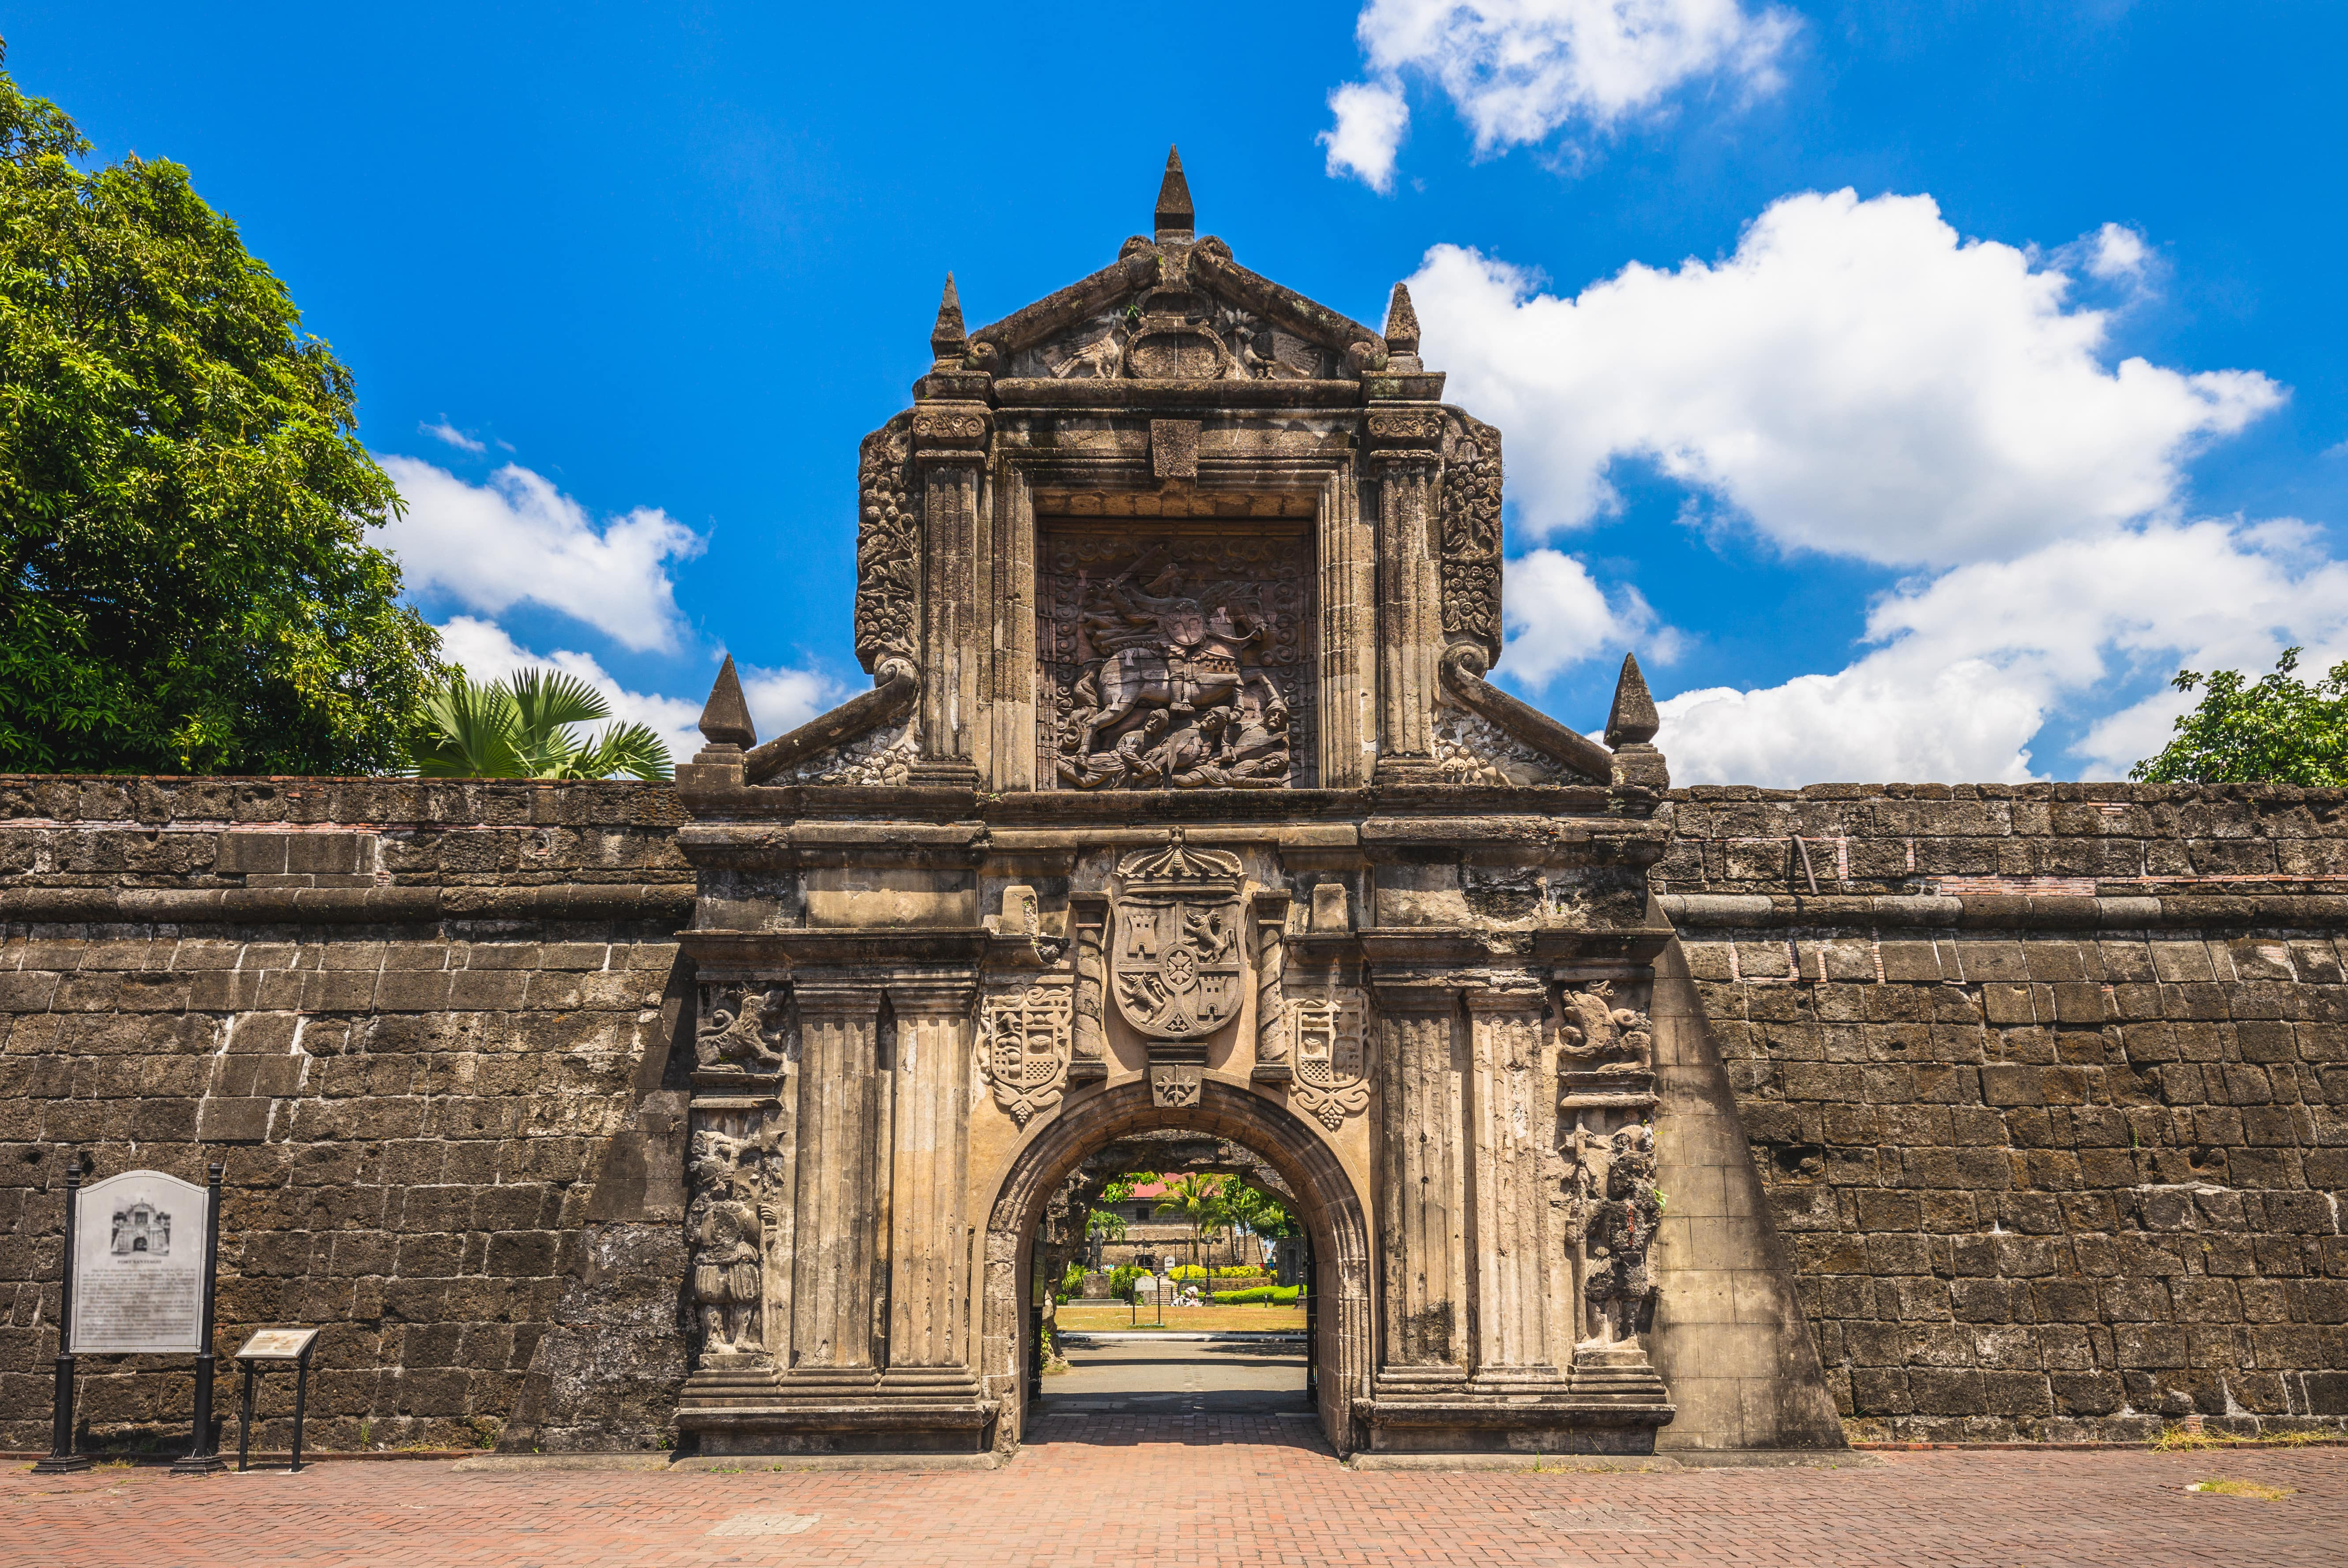 Sturdy and rustic facade of Fort Santiago in Intramuros